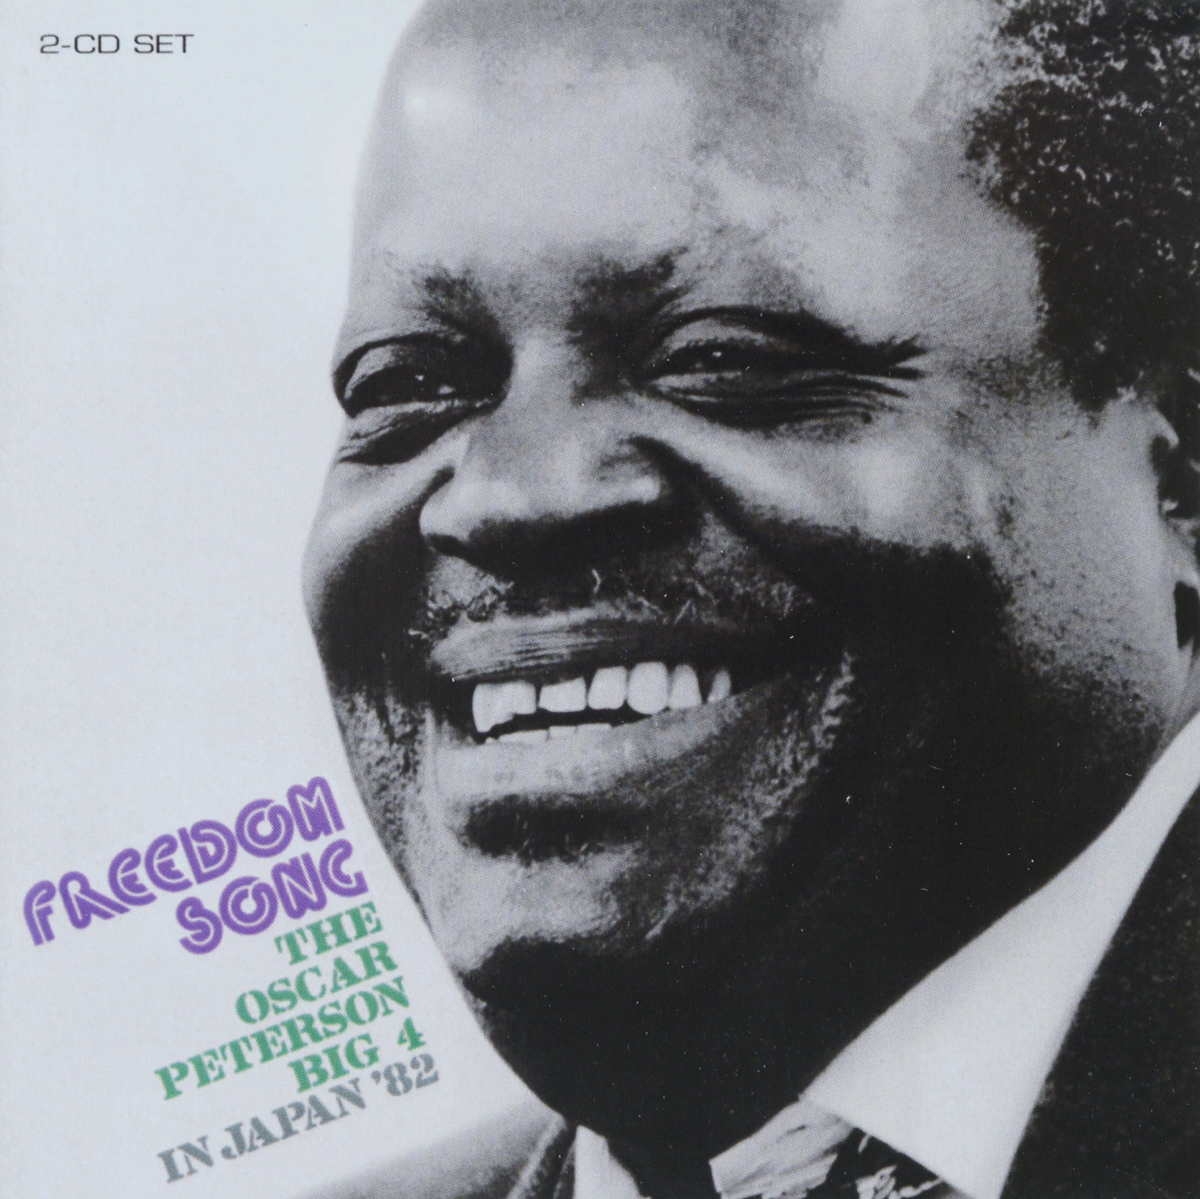 Оскар Питерсон The Oscar Peterson. Freedom Song. Big 4 In Japan 1982 (2 CD) оскар питерсон oscar peterson the song books 5 cd